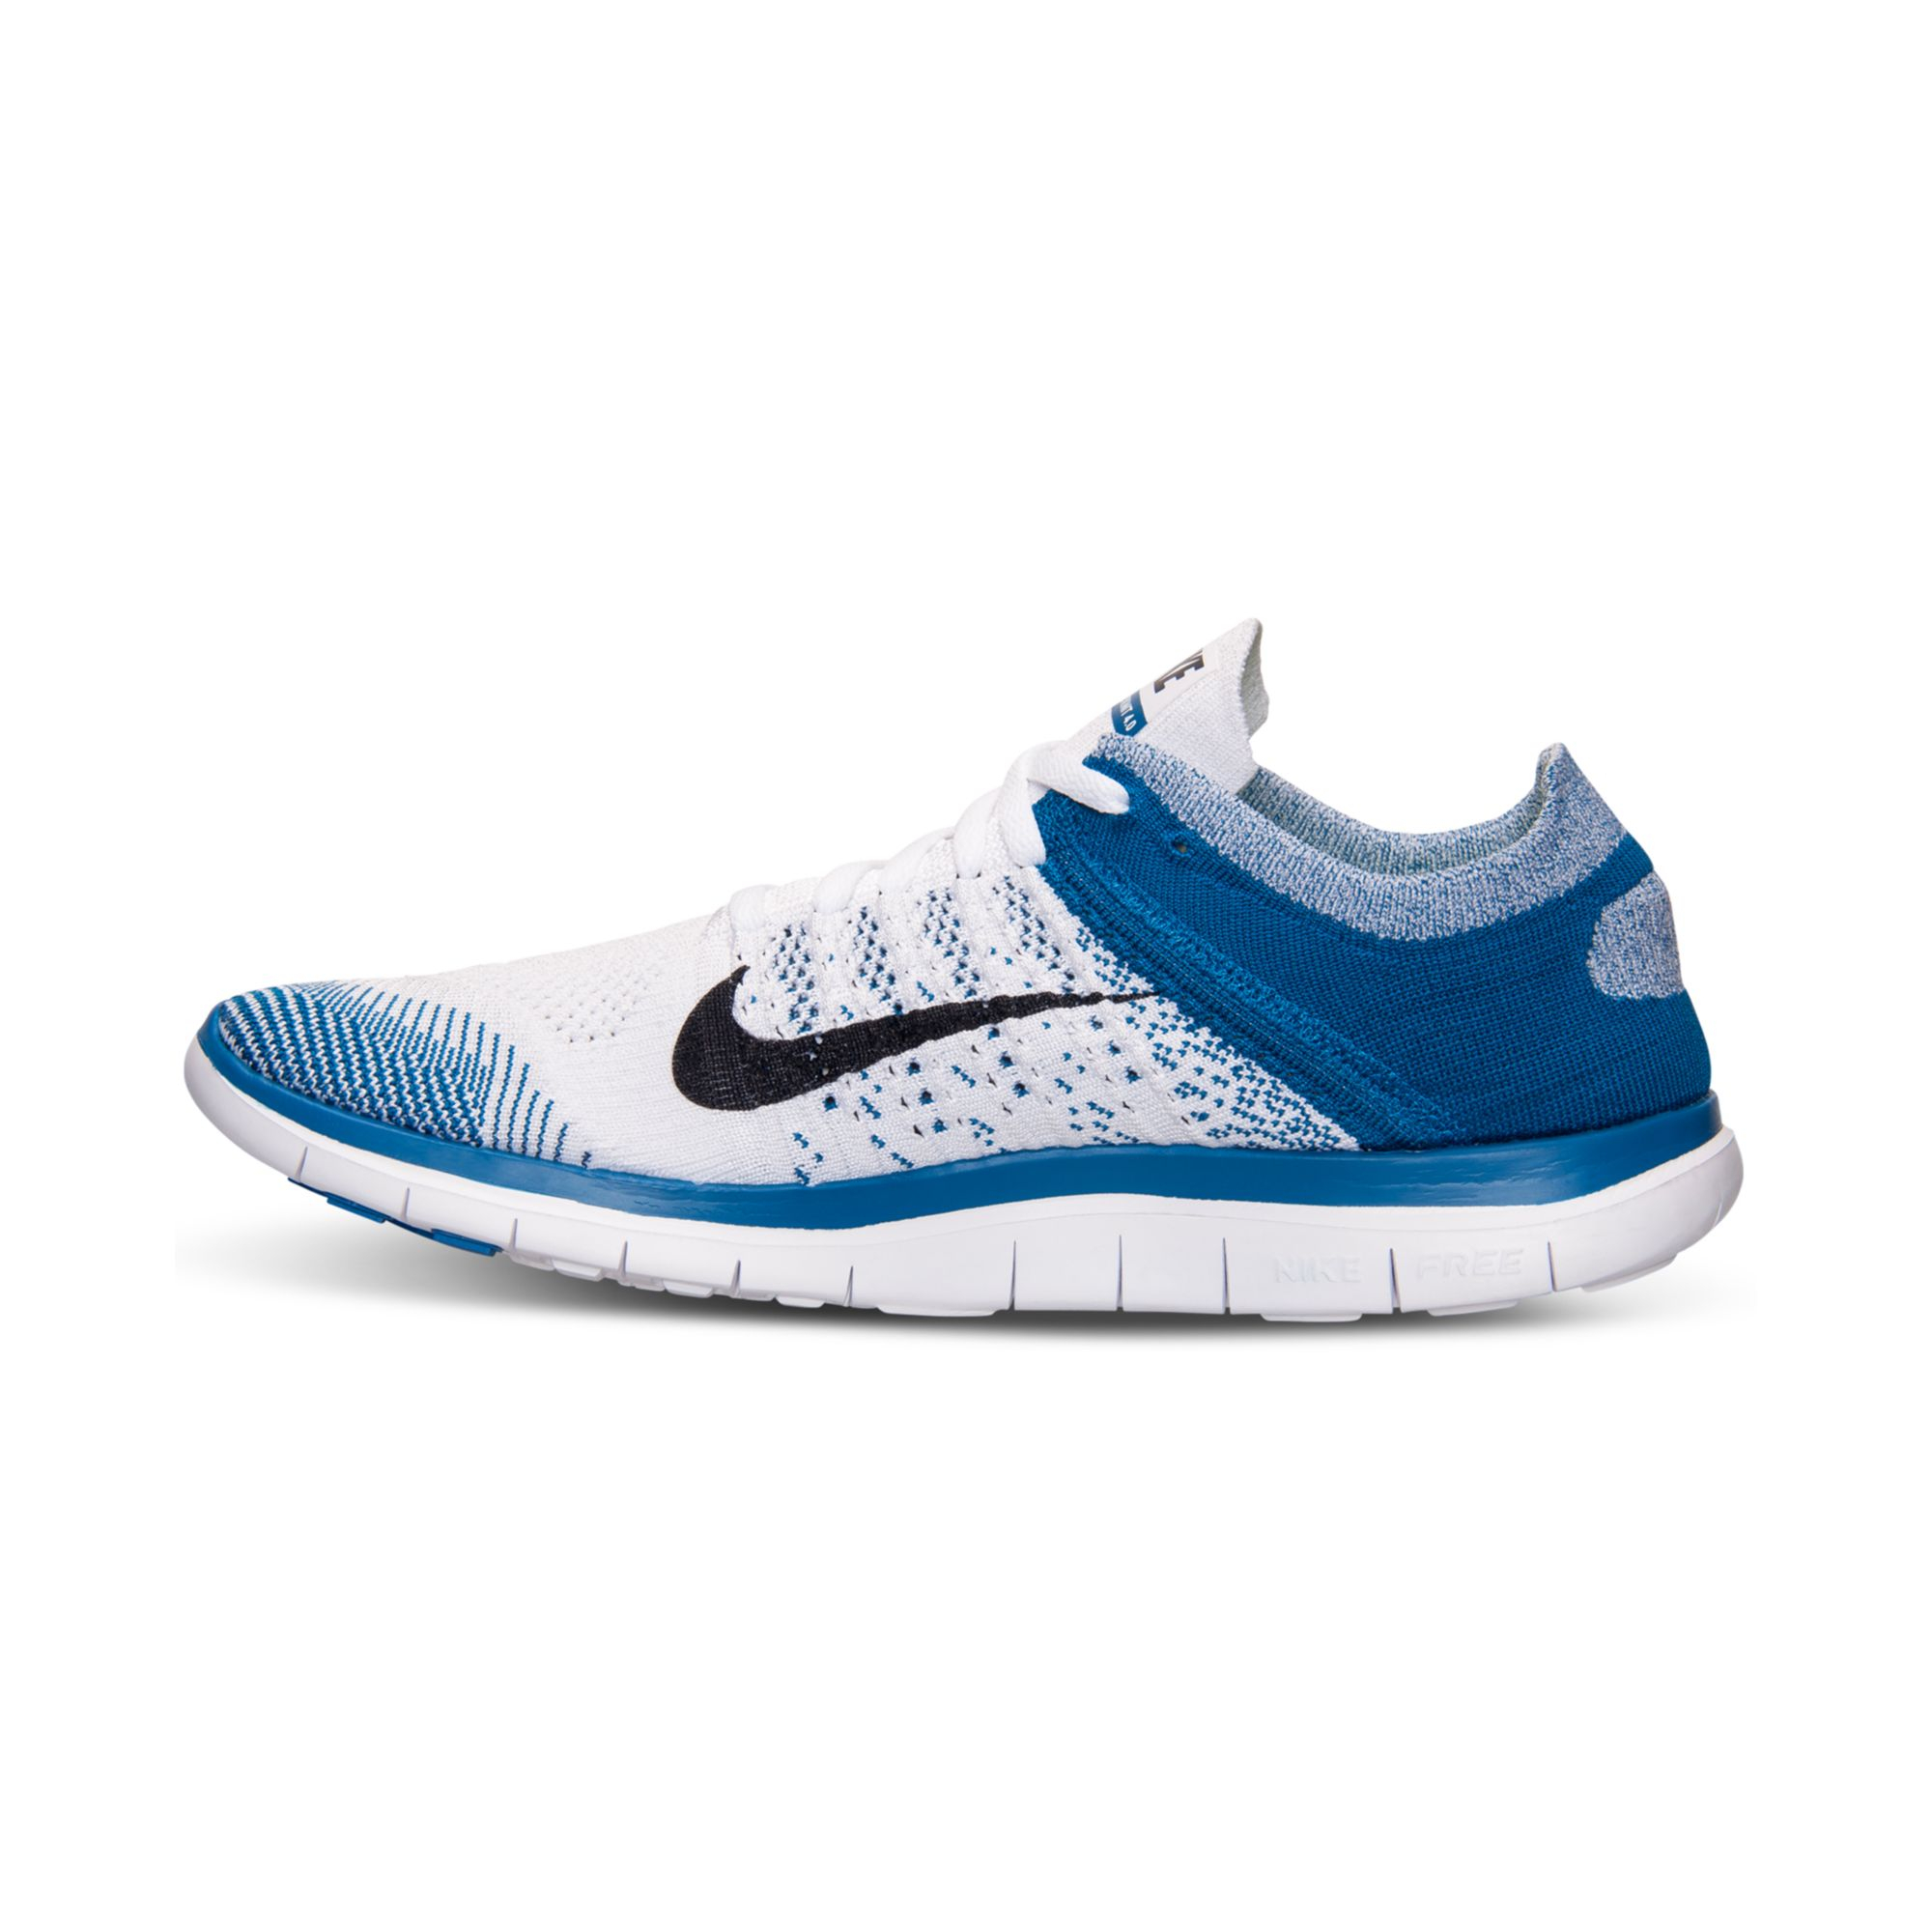 nike men 39 s free flyknit 4 0 running sneakers from finish line in blue for men lyst. Black Bedroom Furniture Sets. Home Design Ideas